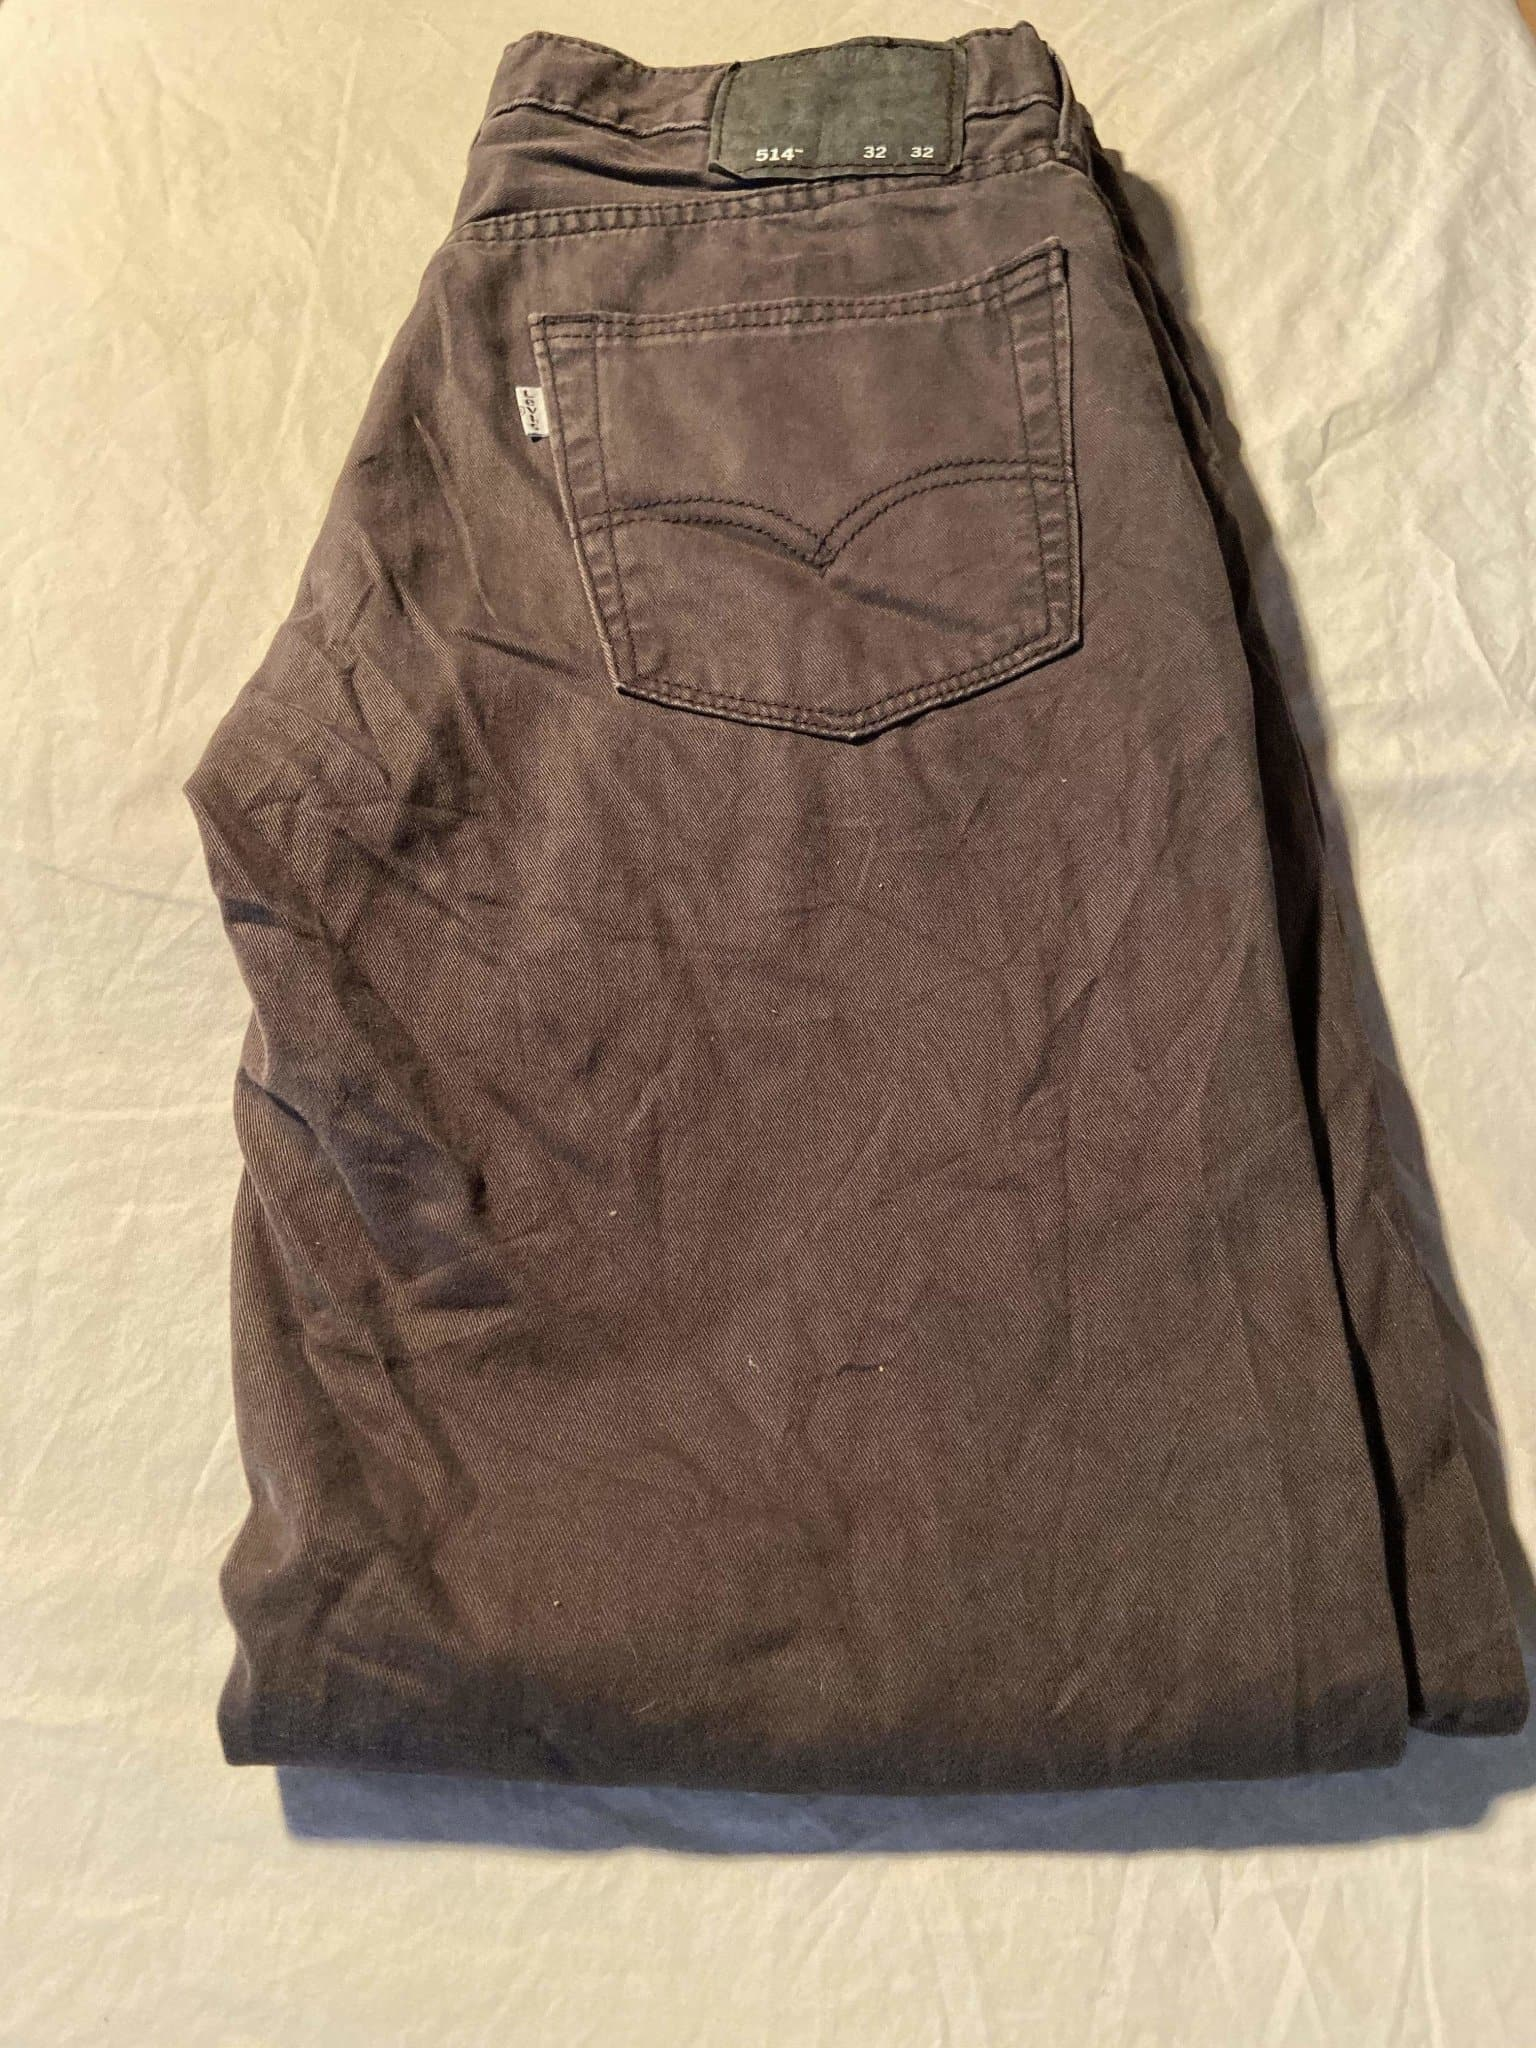 Vintage Levi's 514 Jeans W32 L32 (K5) - Discounted Deals UK